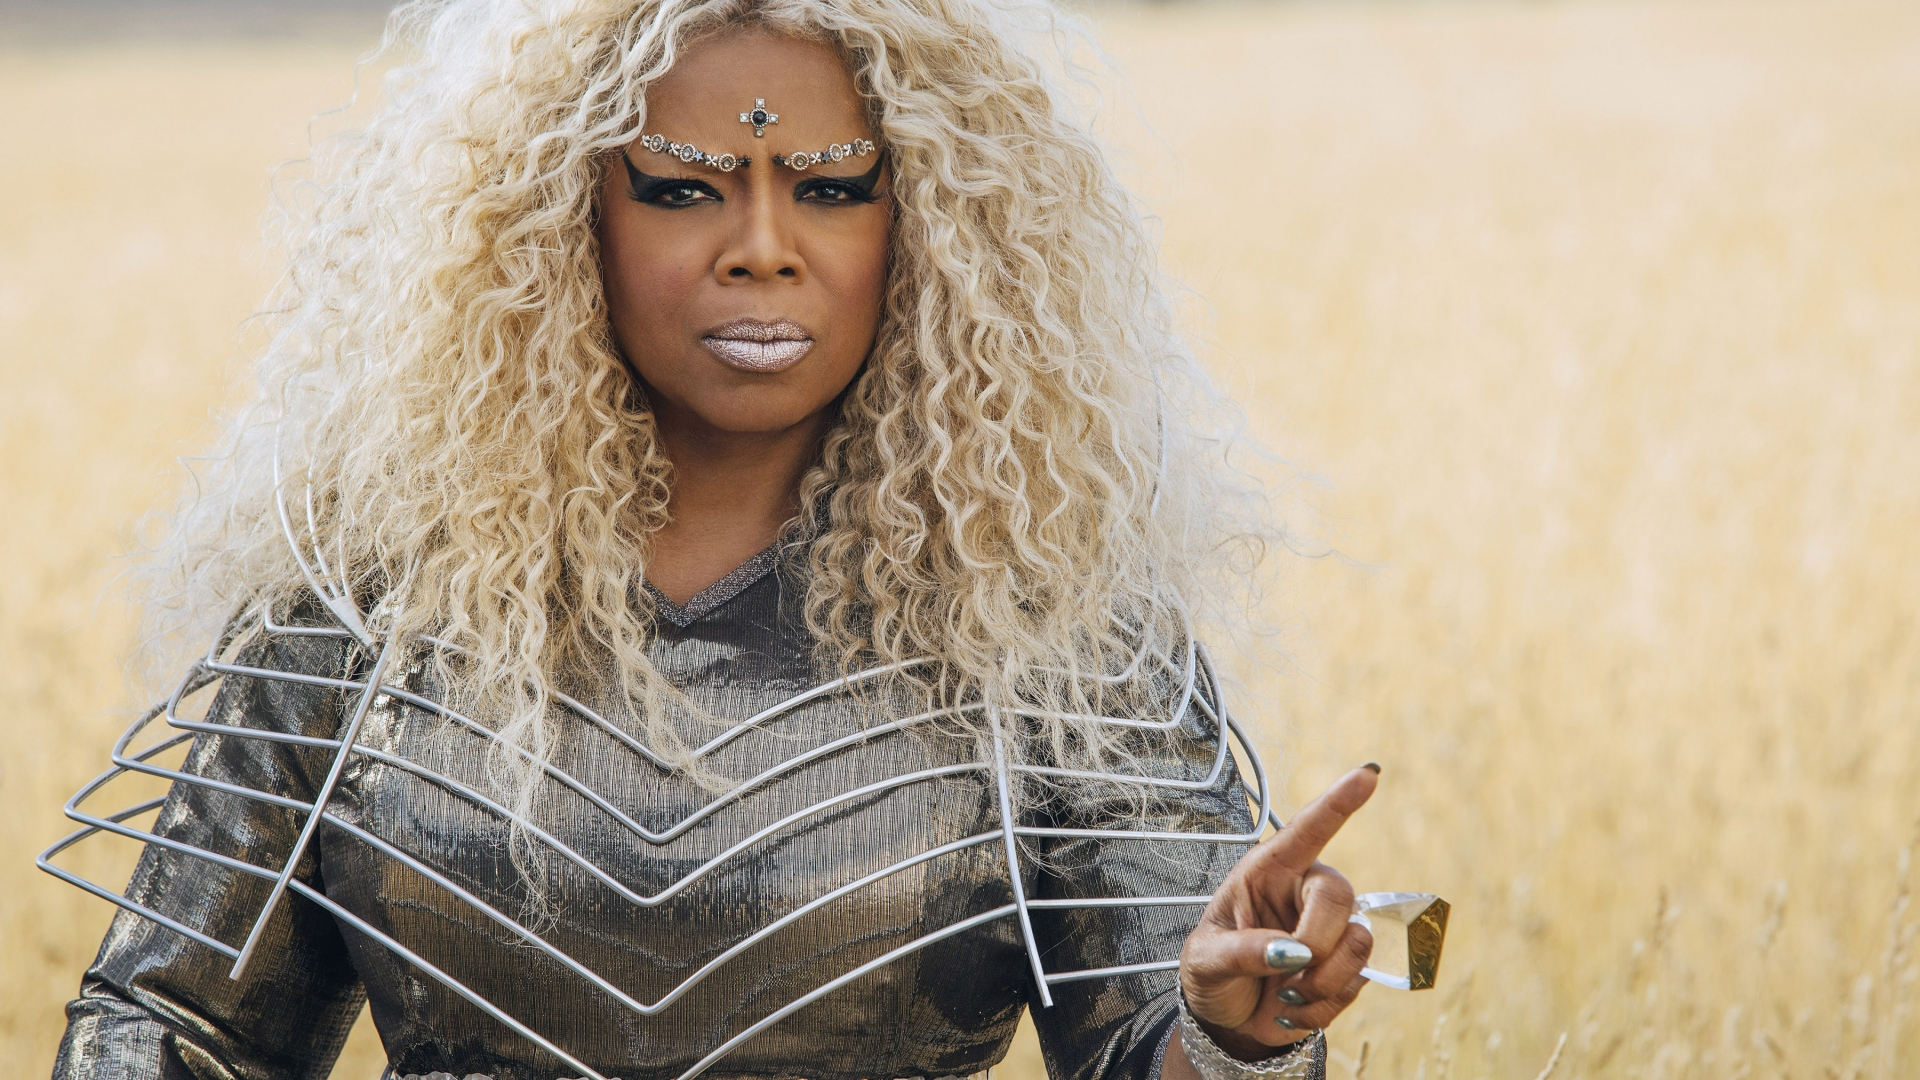 Oprah Winfrey as Mrs. Which in Disney's A Wrinkle In Time, 2018. (Credit: Atsushi Nishijima/Walt Disney Studios Motion Pictures/Everett)